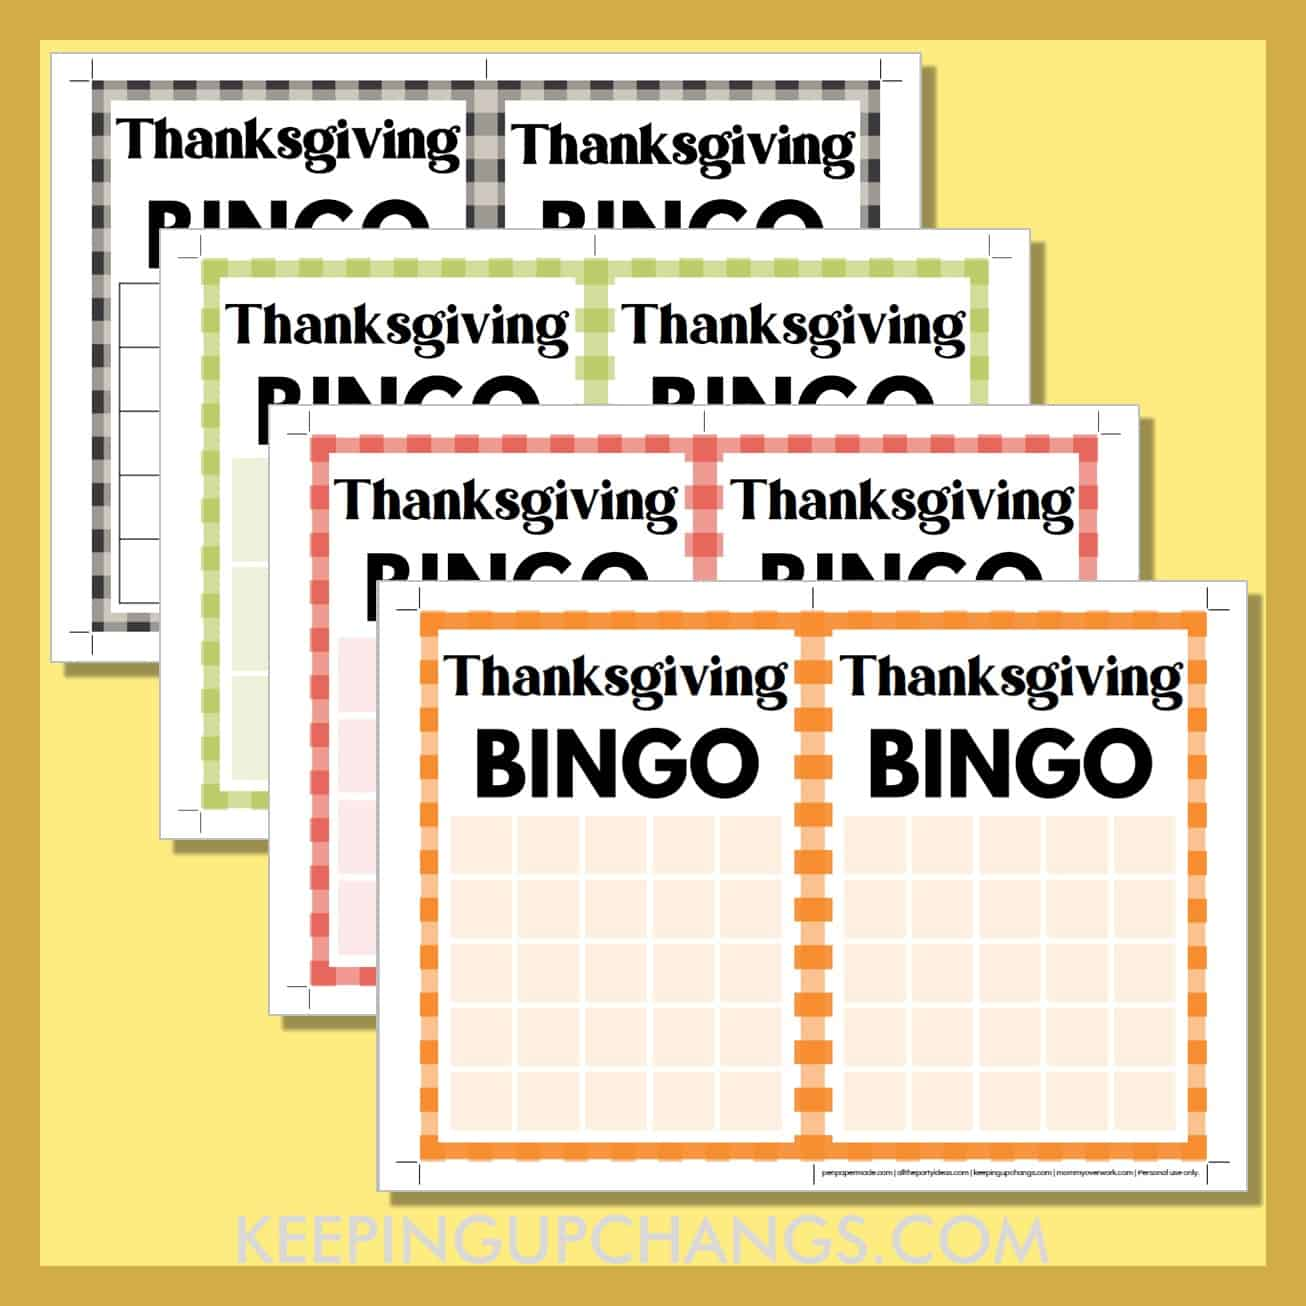 free blank thanksgiving bingo card printable templates in 3x3, 4x4 and 5x5 grids.